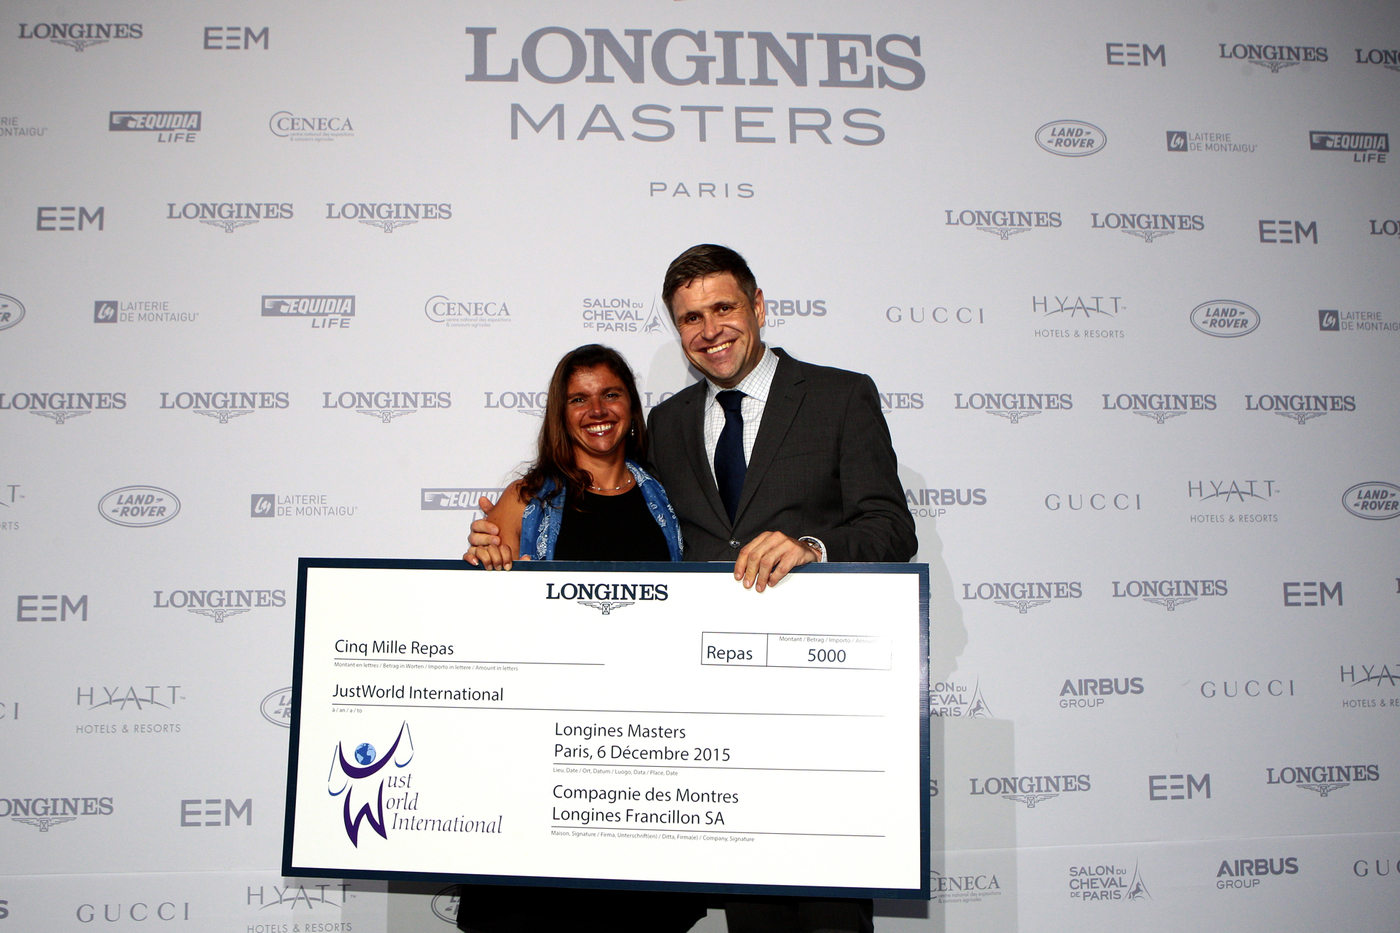 Longines Show Jumping Event: The Longines Masters of Paris: four days of high level show jumping competition in a glamorous atmosphere 9